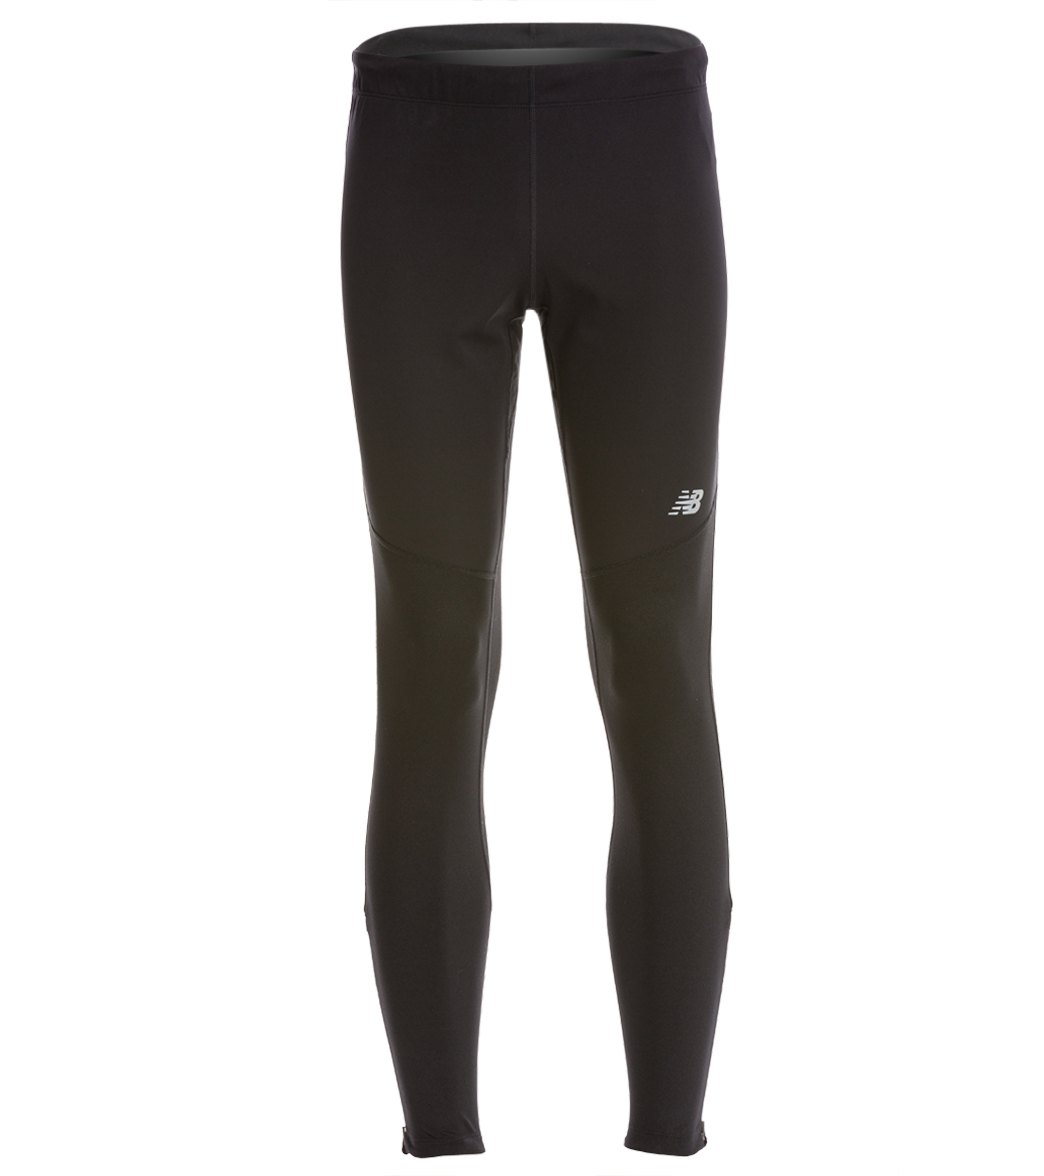 22ae5e9fe3c0f New Balance Men's Windblocker Tight at SwimOutlet.com - Free Shipping